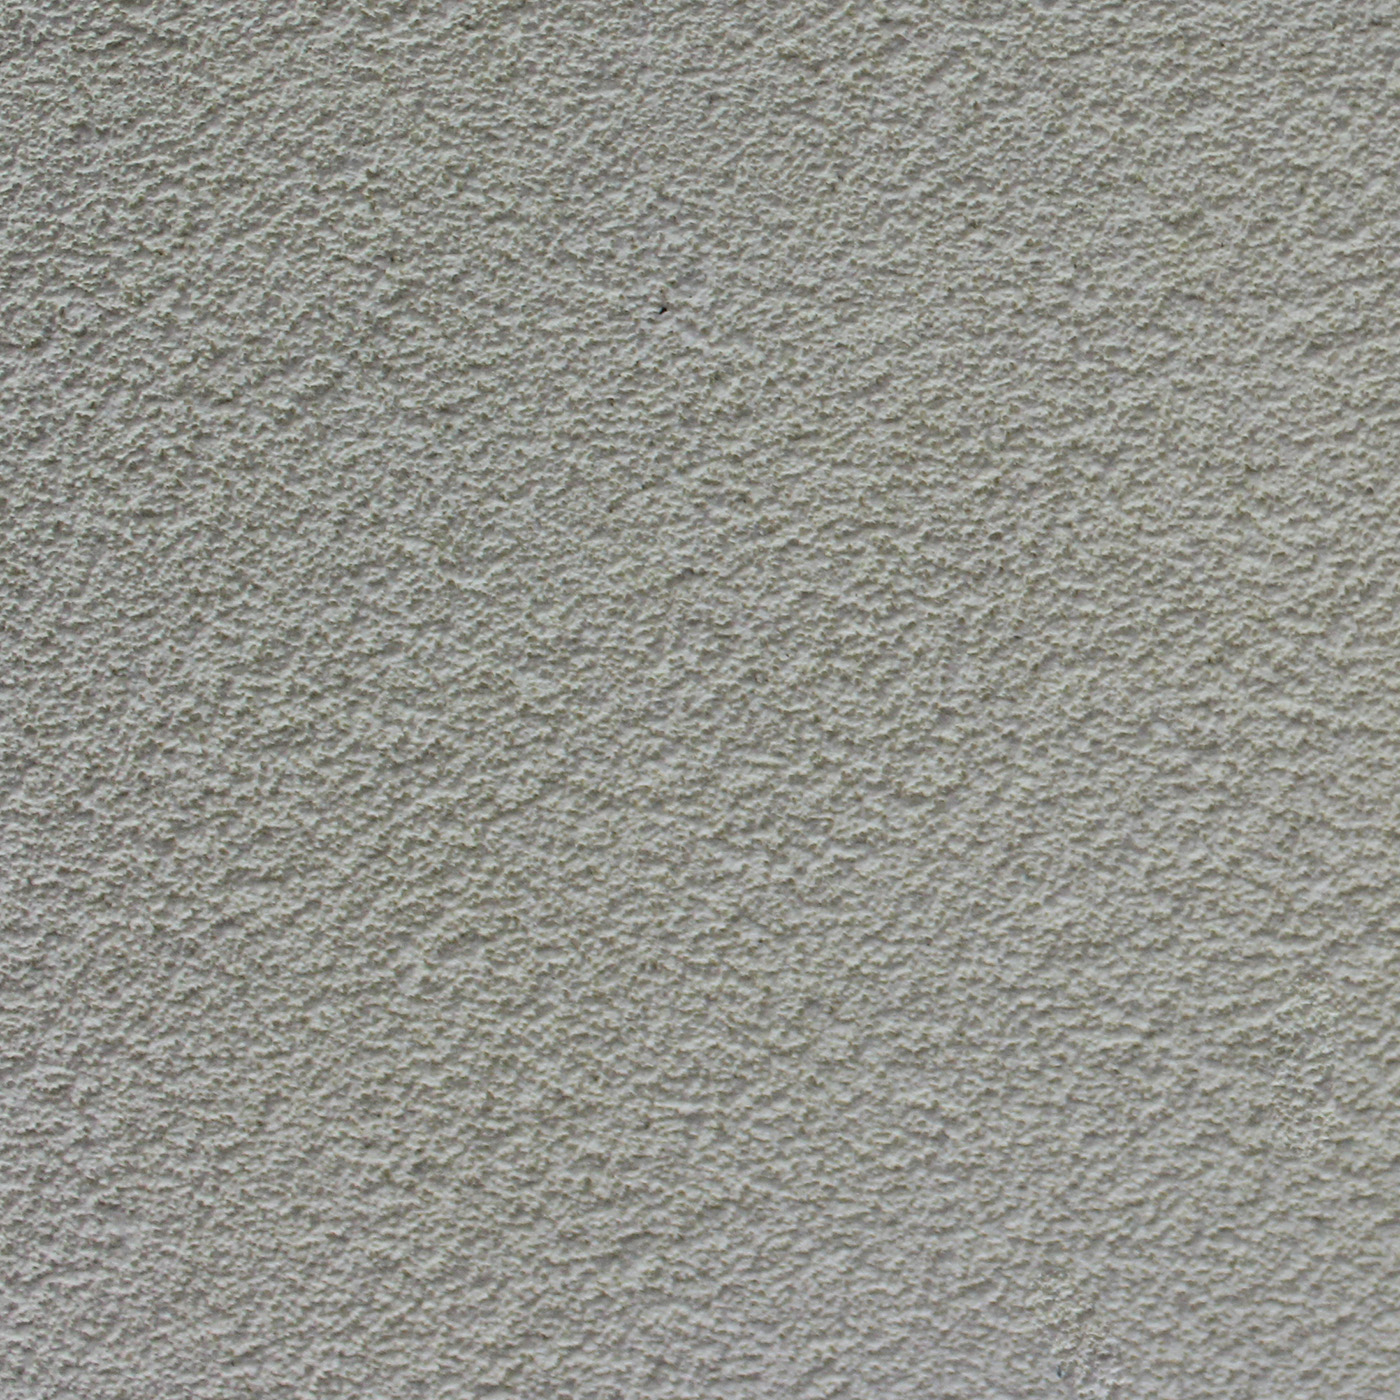 Unitex Uni Dry Cote Powder Texture Unitex Your Walls